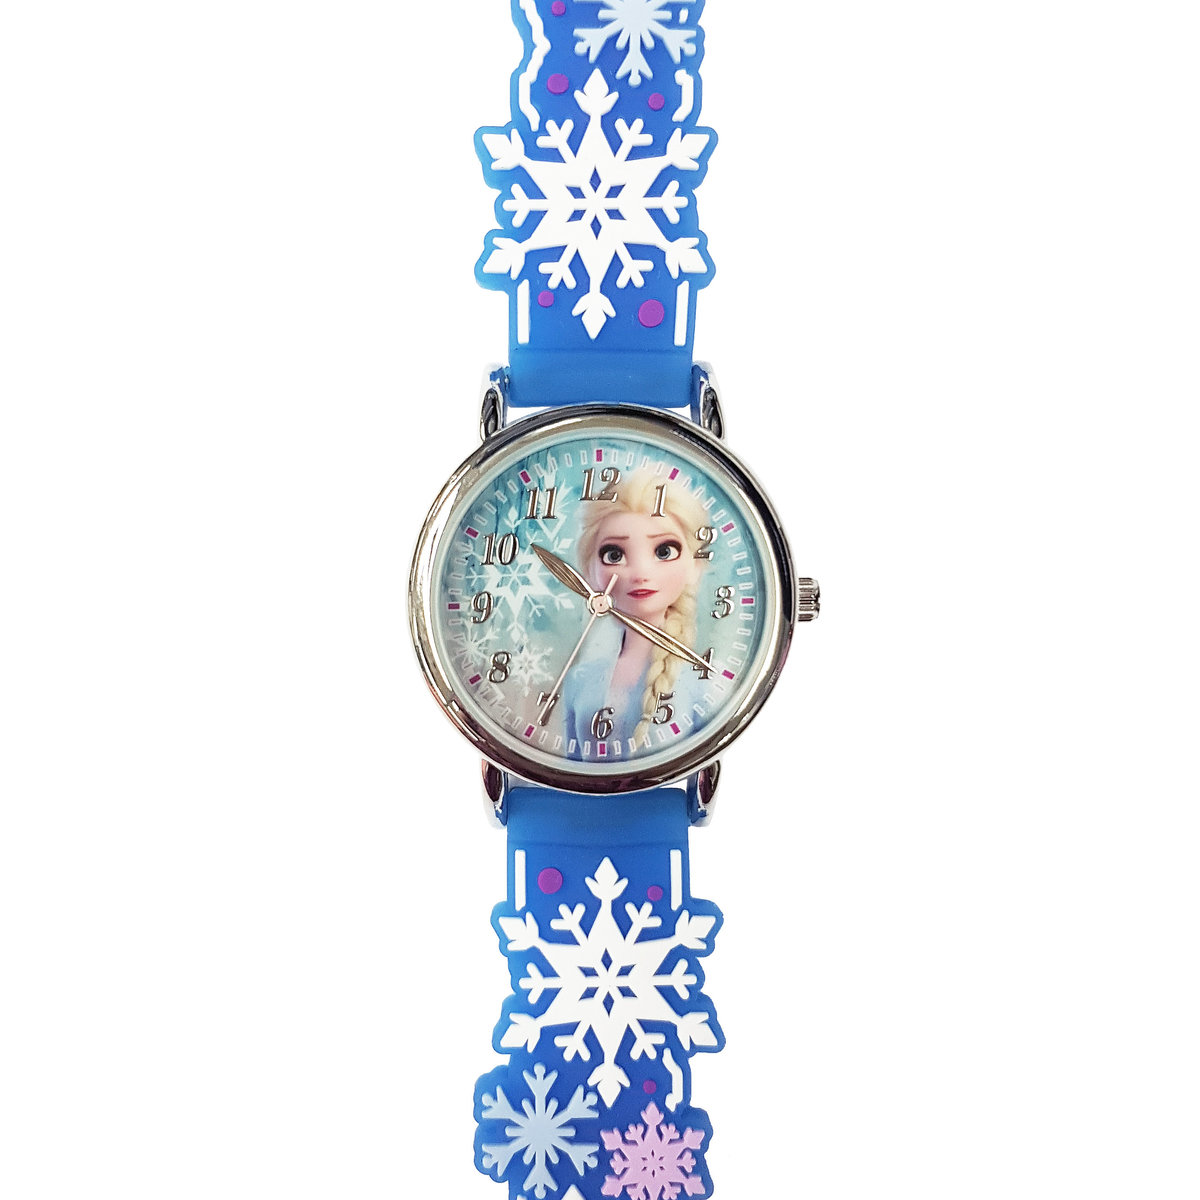 DISNEY FROZEN 2 - Luminous watch wrist watch - Elsa(Licensed by Disney)